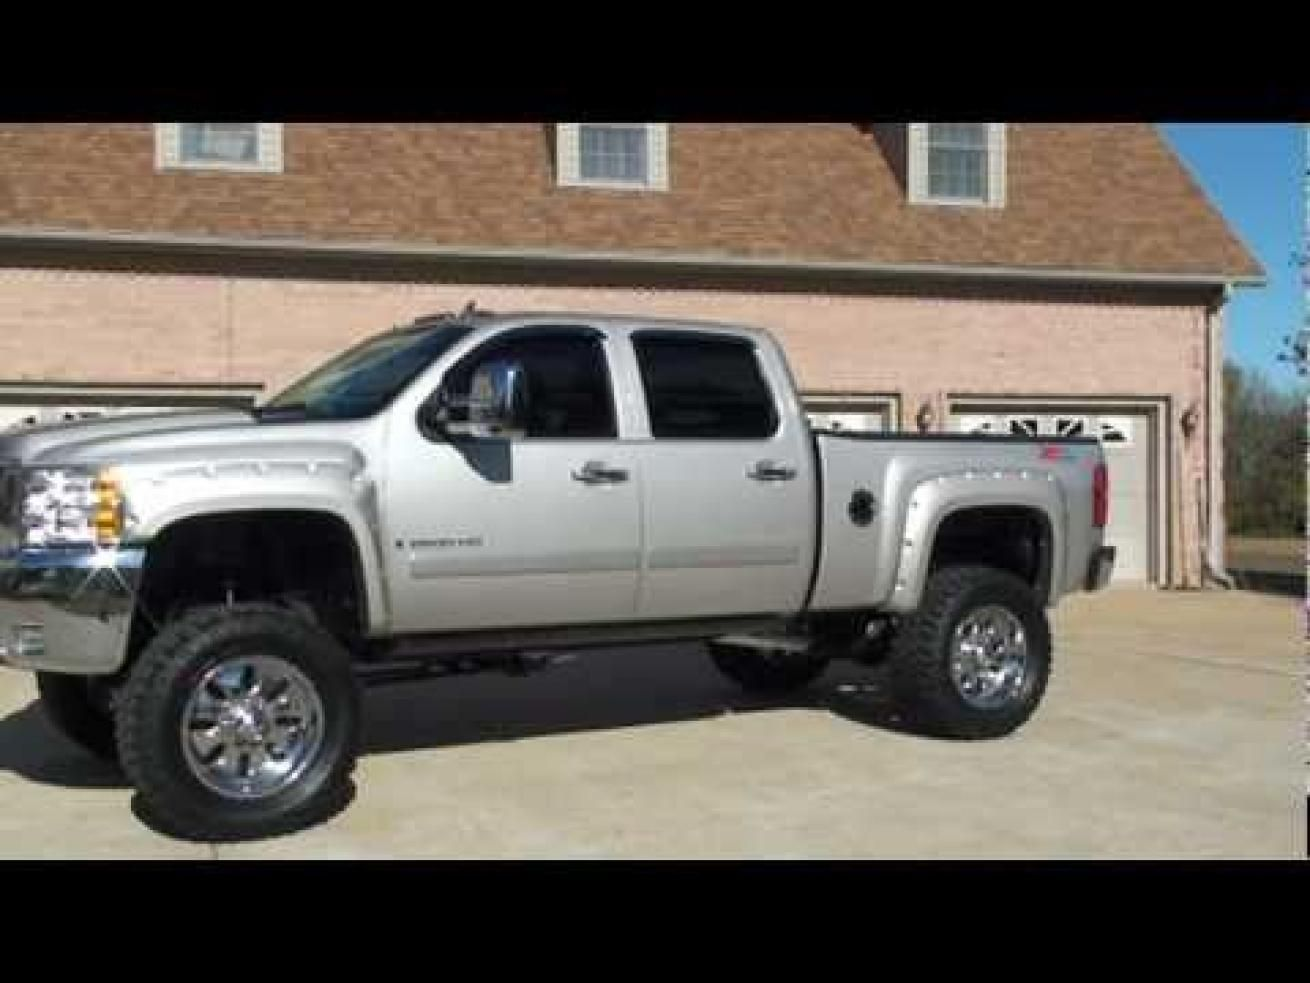 Truck 2500 chevy truck for sale : Chevrolet Silverado | Chevrolet Silverado Trucks | Pinterest ...